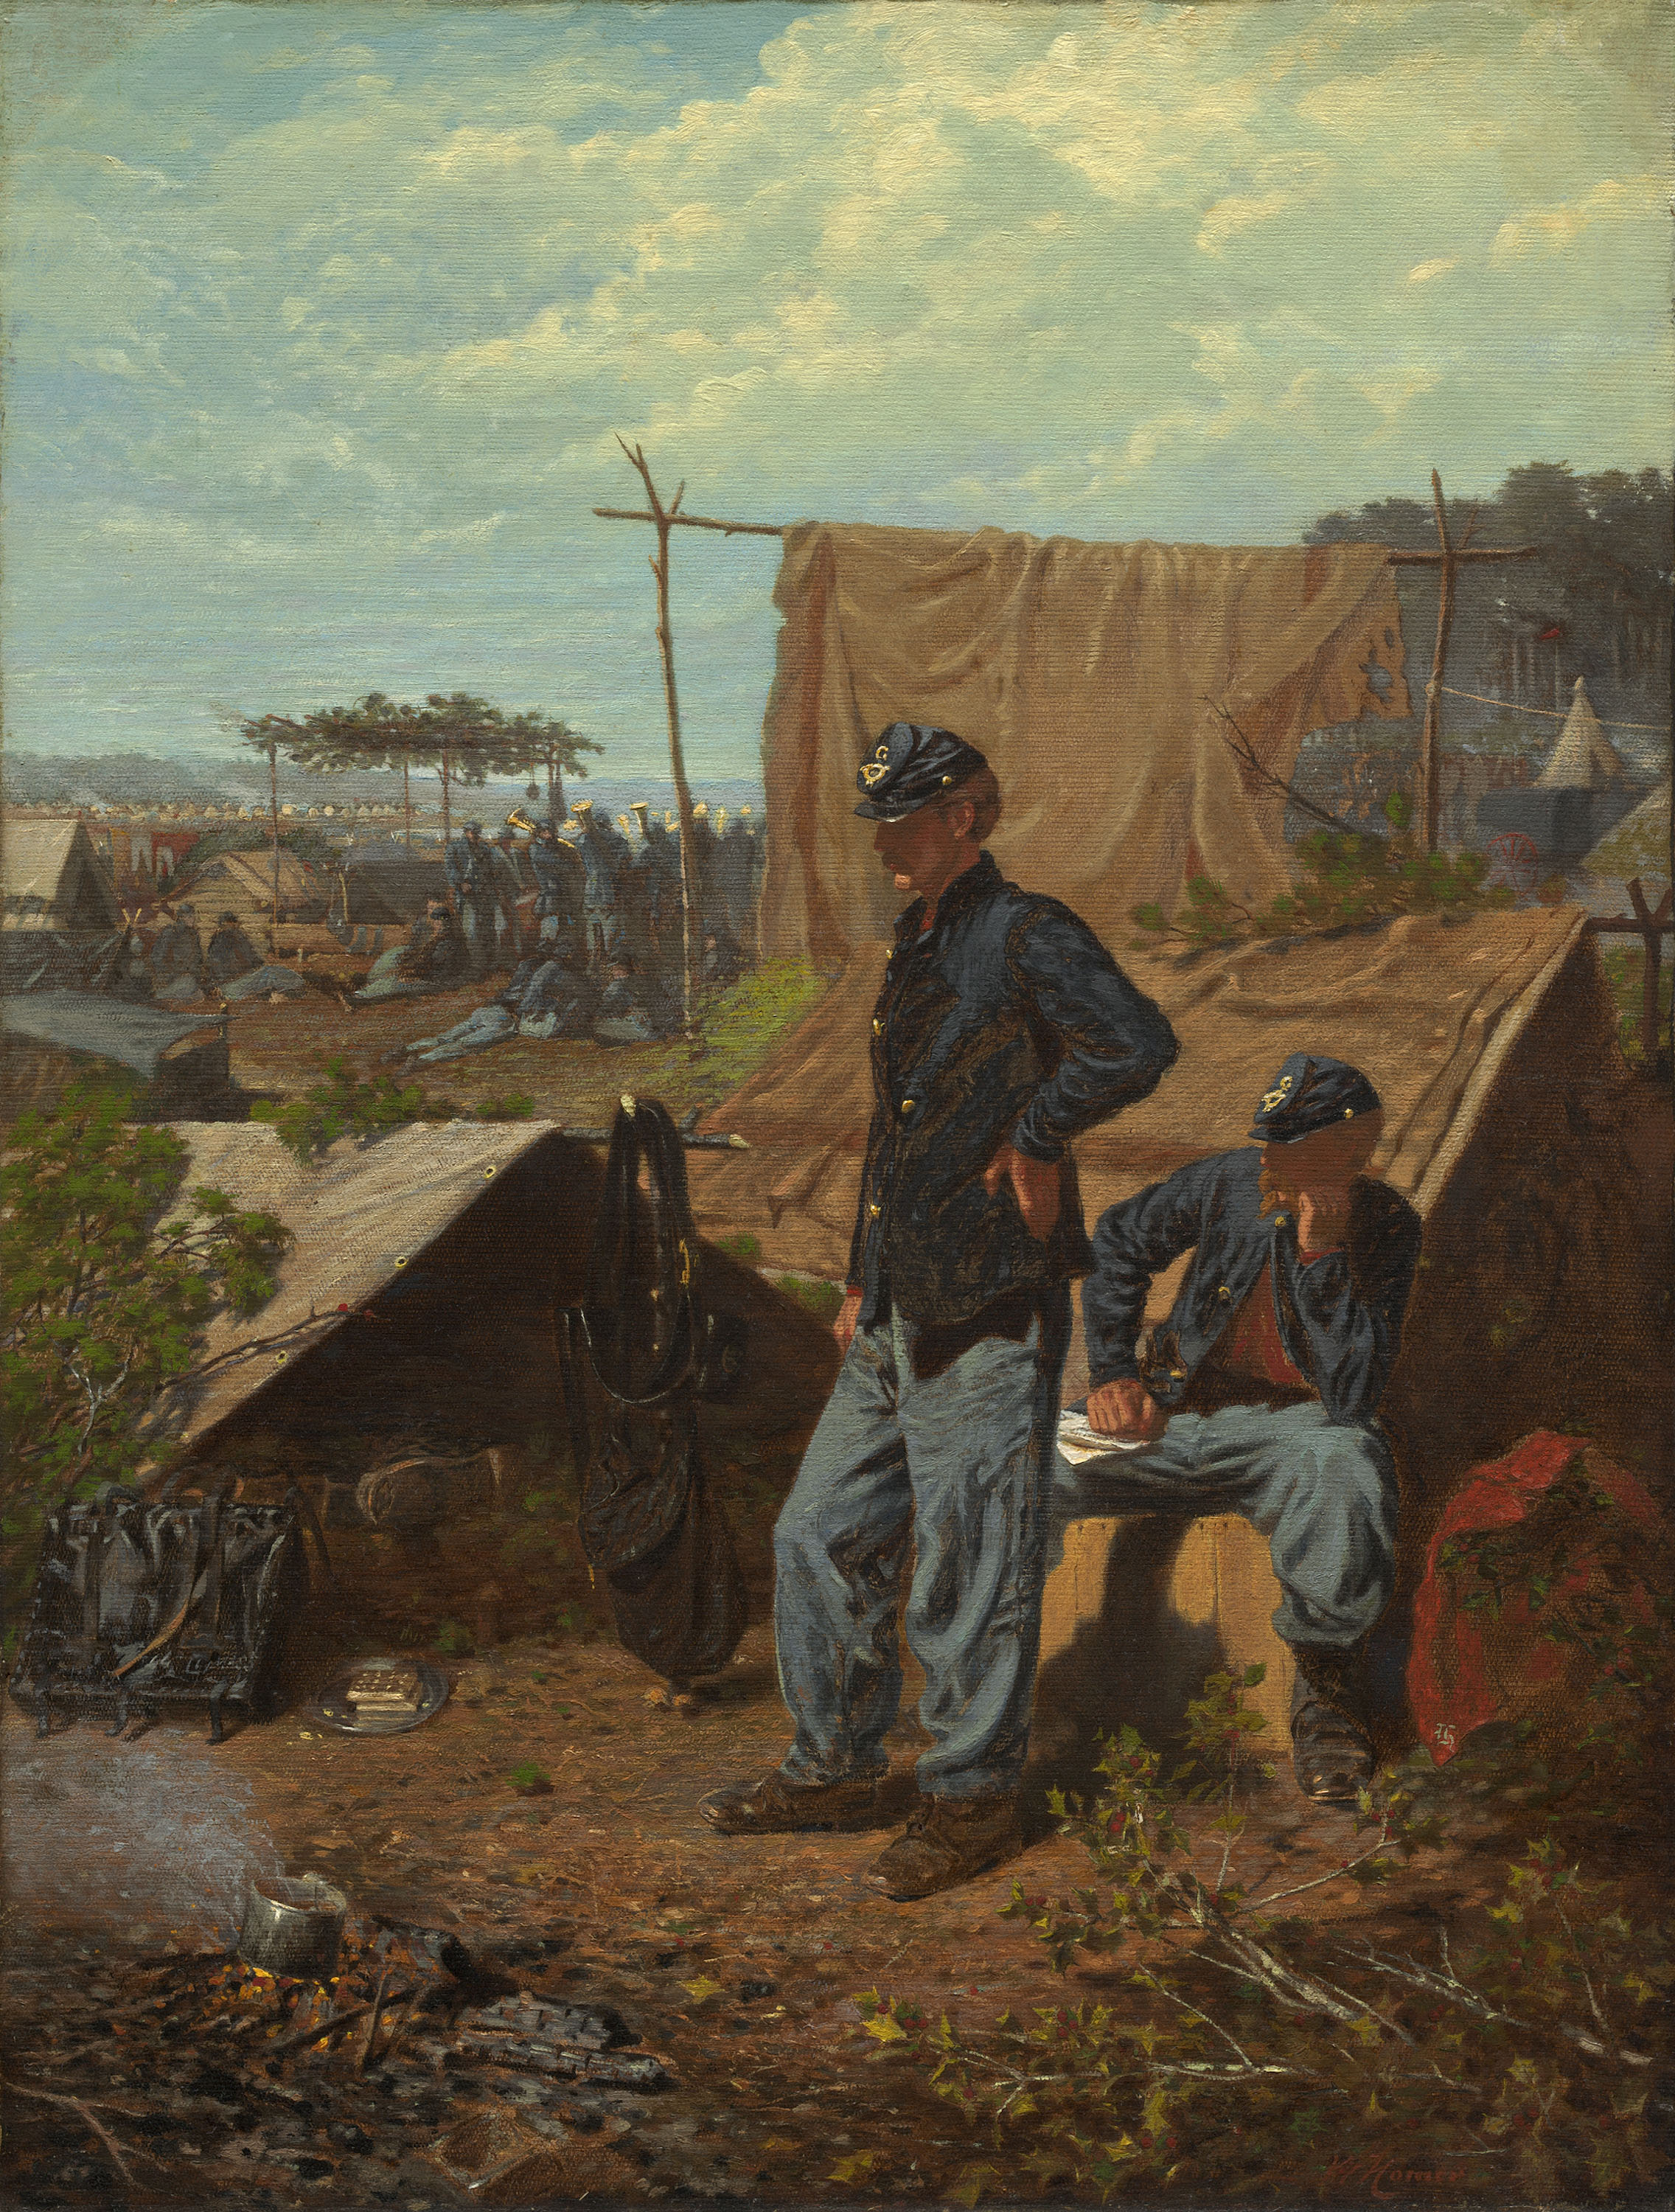 Winslow Homer (American, 1836-1010), Home, Sweet Home, c. 1863, oil on canvas, 21 ½ x 16 ½ inches. National Gallery of Art, Washington. Patrons' Permanent Fund, 1997.72.1